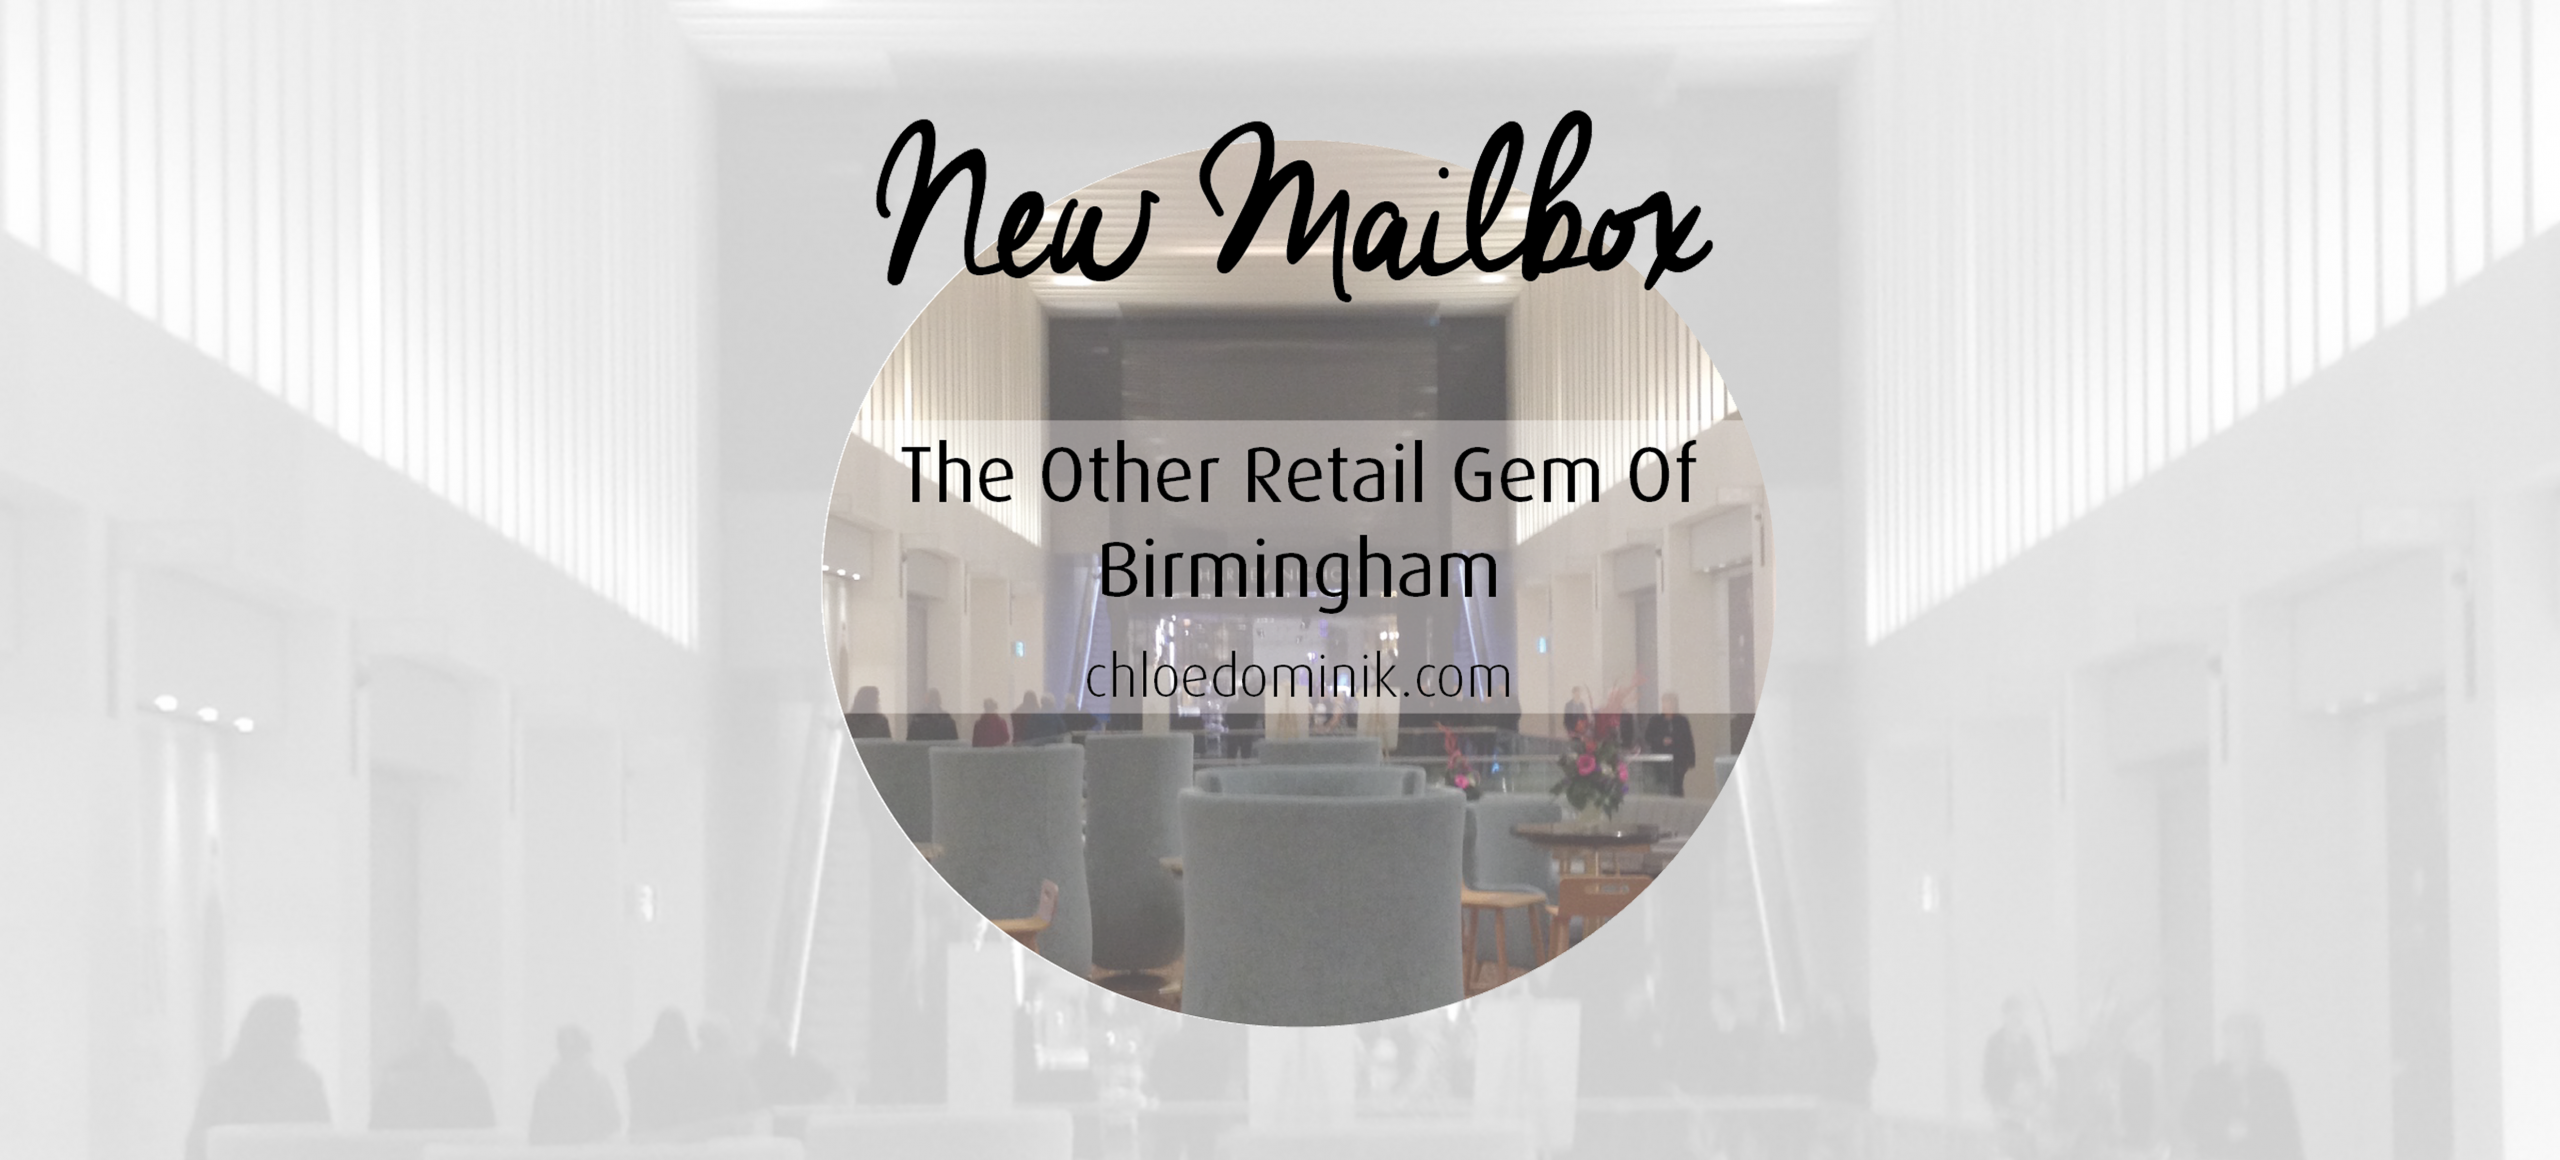 New Mailbox: The Other Retail Gem Of Birmingham